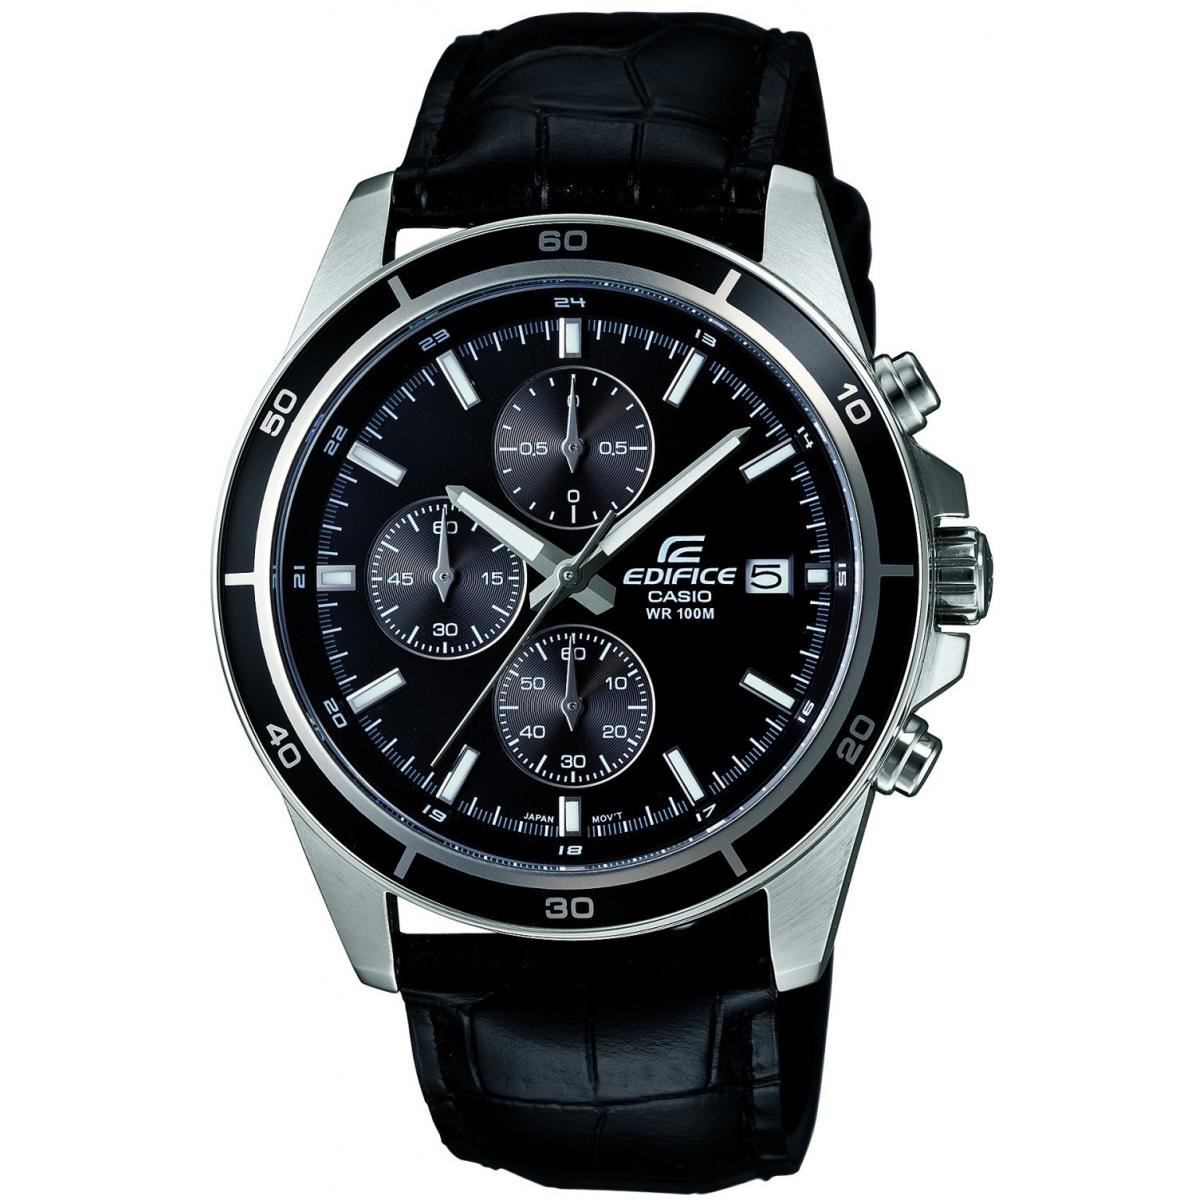 Montre Homme Casio EDIFICE EFR-526L-1AVUEF - Montre Chrono sport cuir